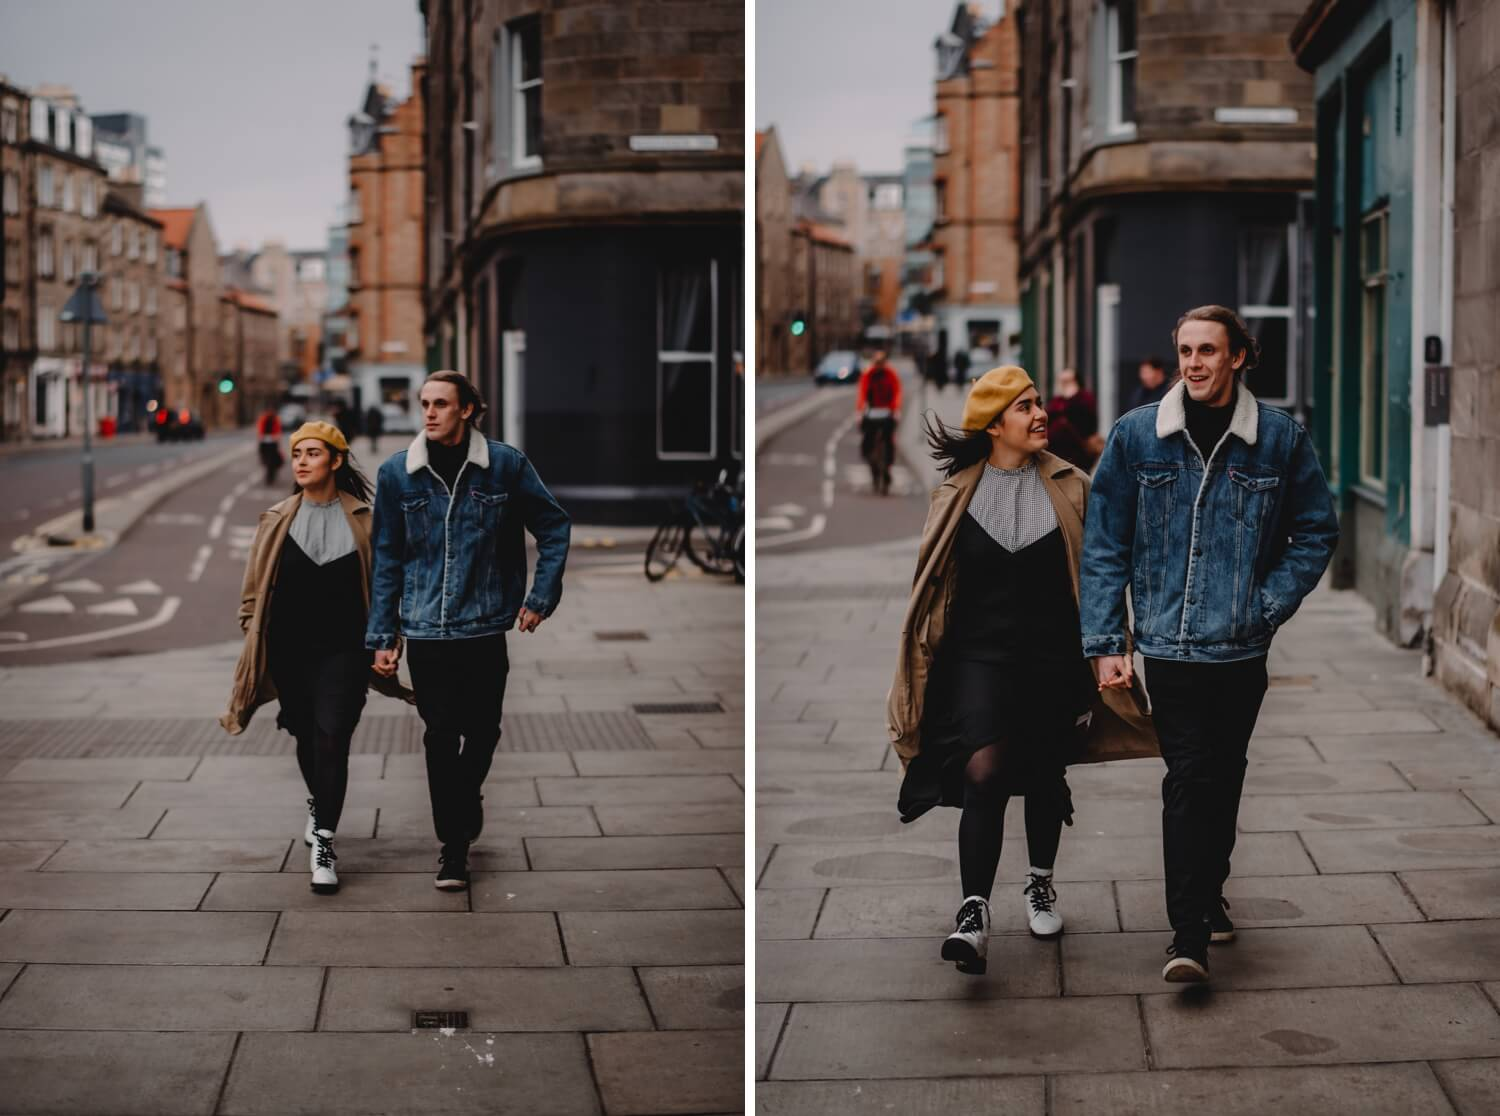 Scotland Couple Photoshoot - Destination wedding photographer - The Adamkovi, edinburgh streets